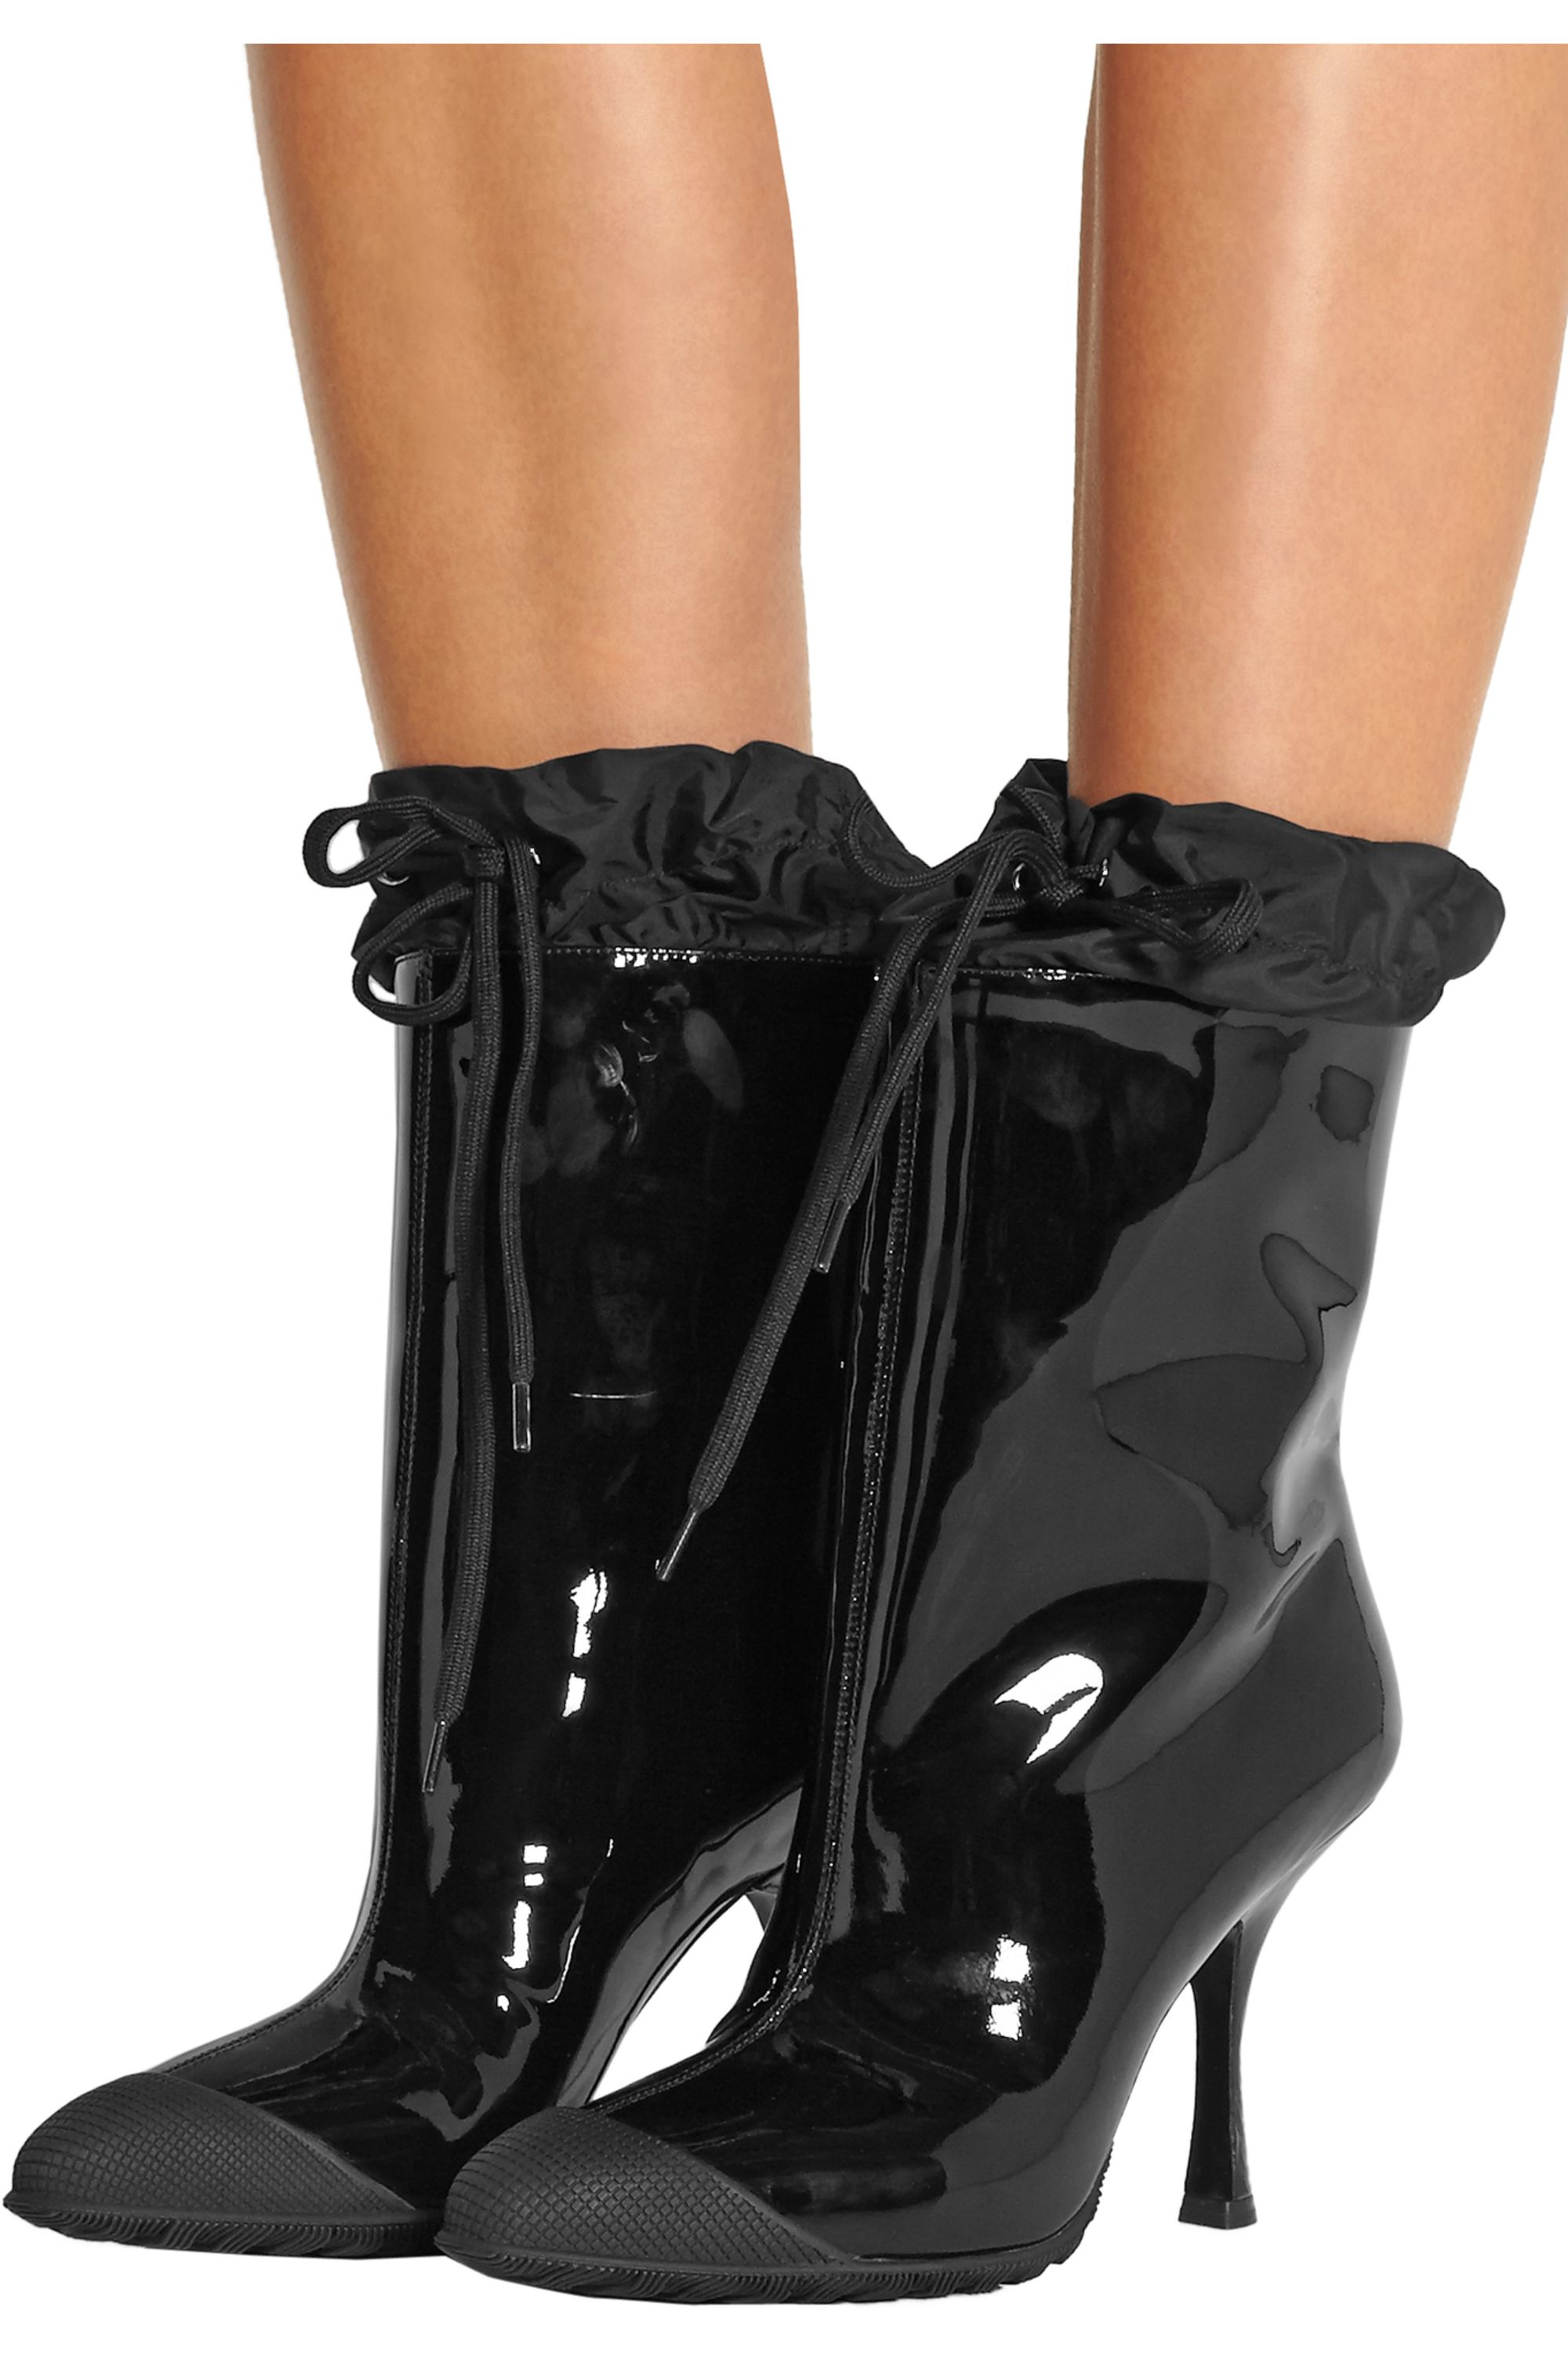 Miu Miu Patent-leather ankle boots